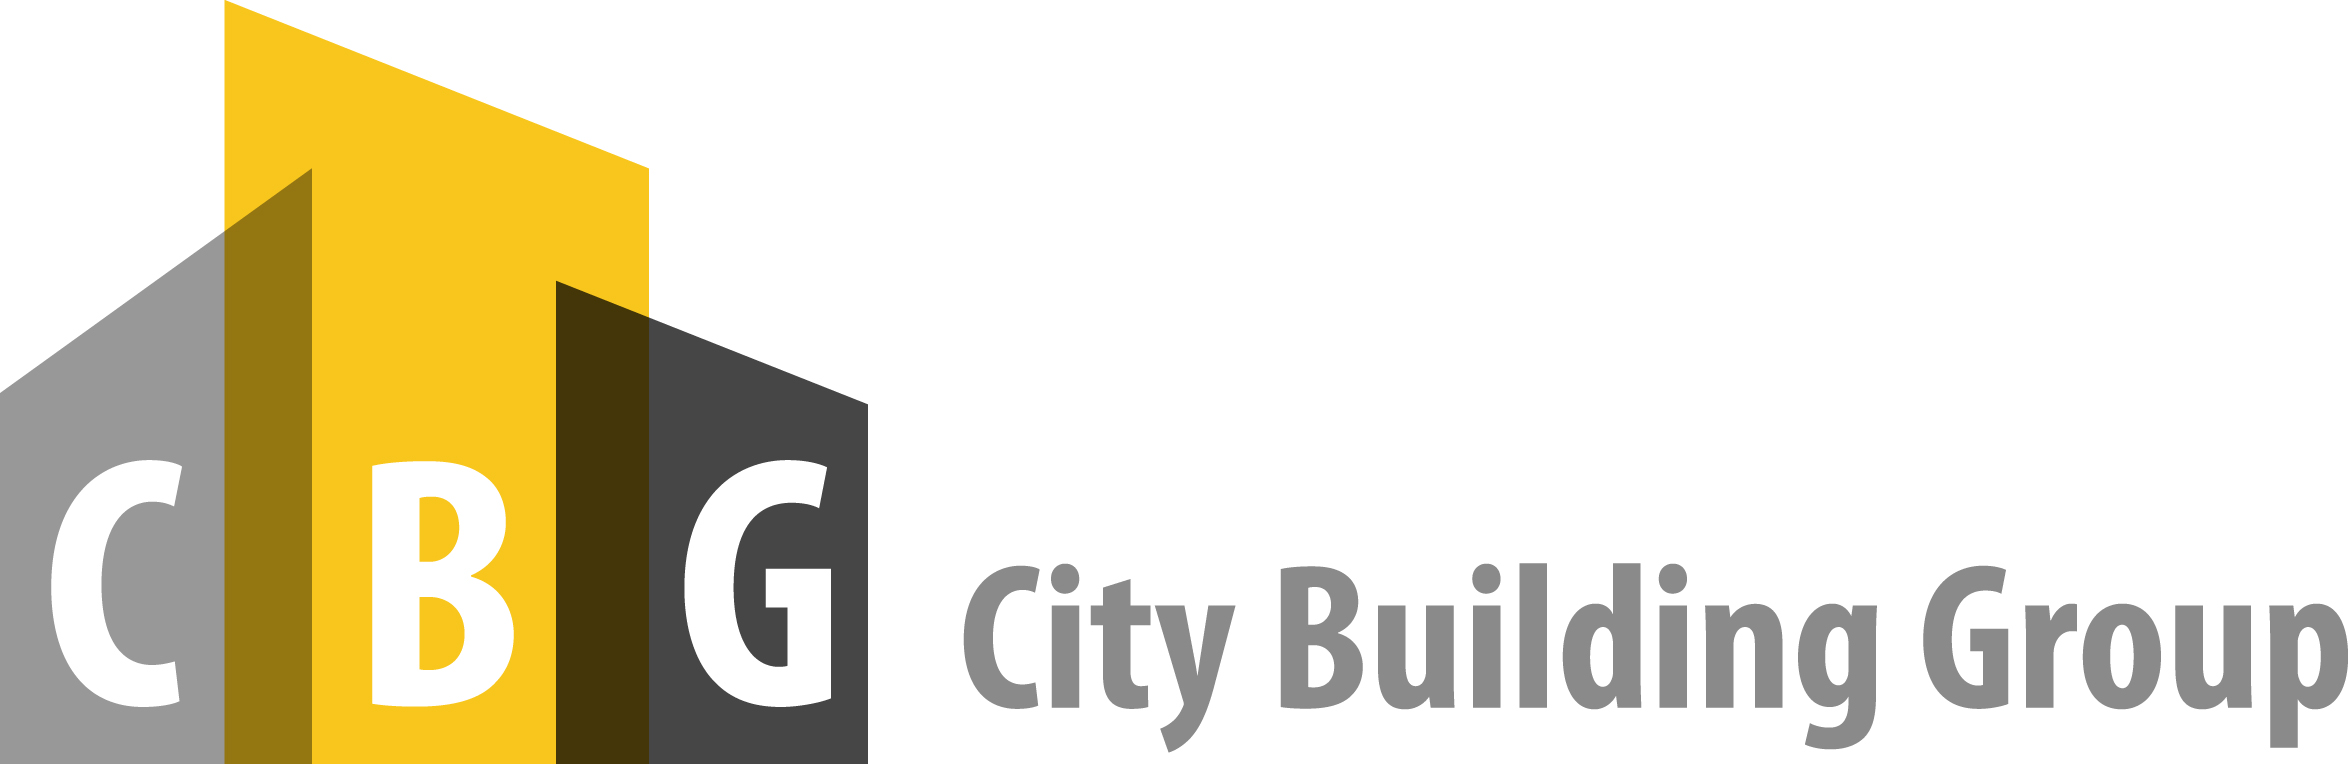 City Building Group